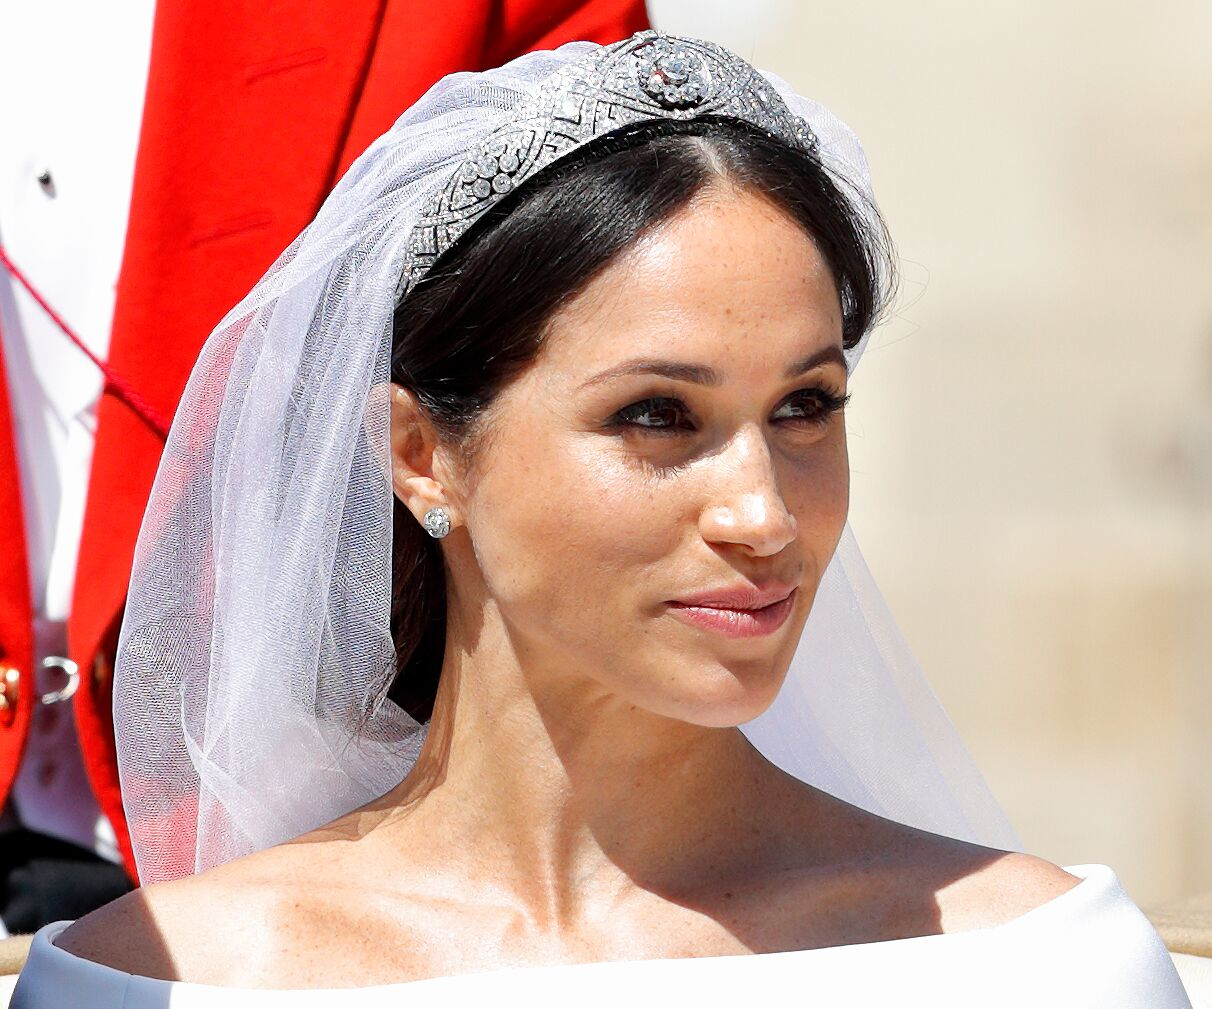 Meghan Markle on her wedding day | Getty Images